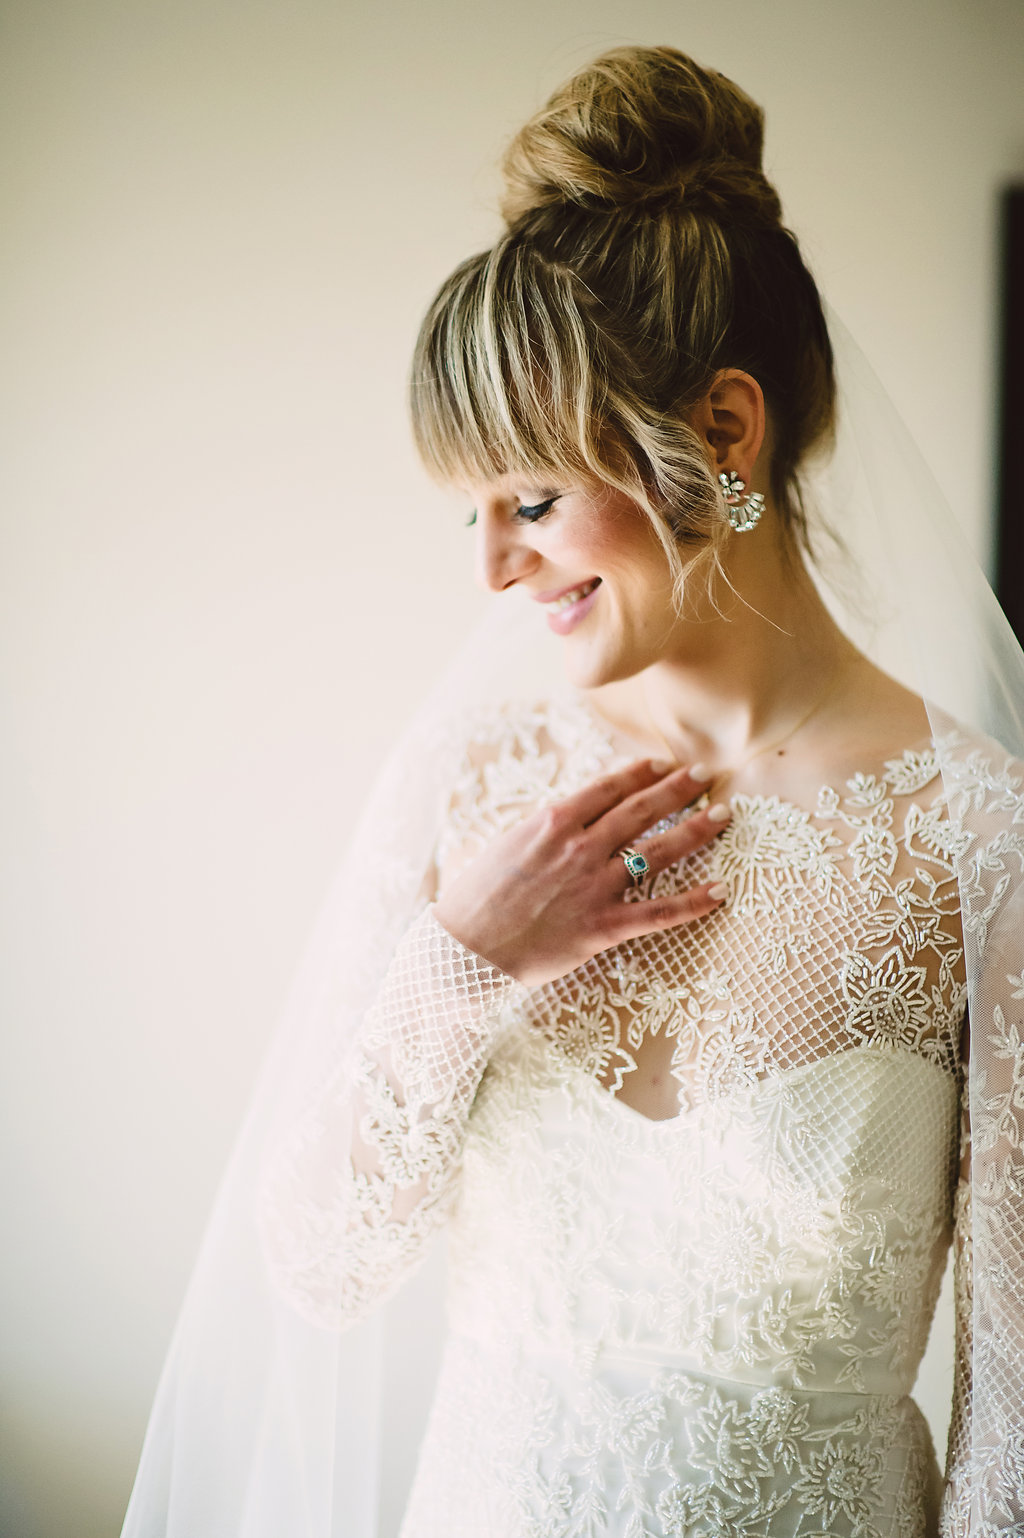 bridal updo, messy top knot, bridal top knot, blonde bride with bangs and top bun